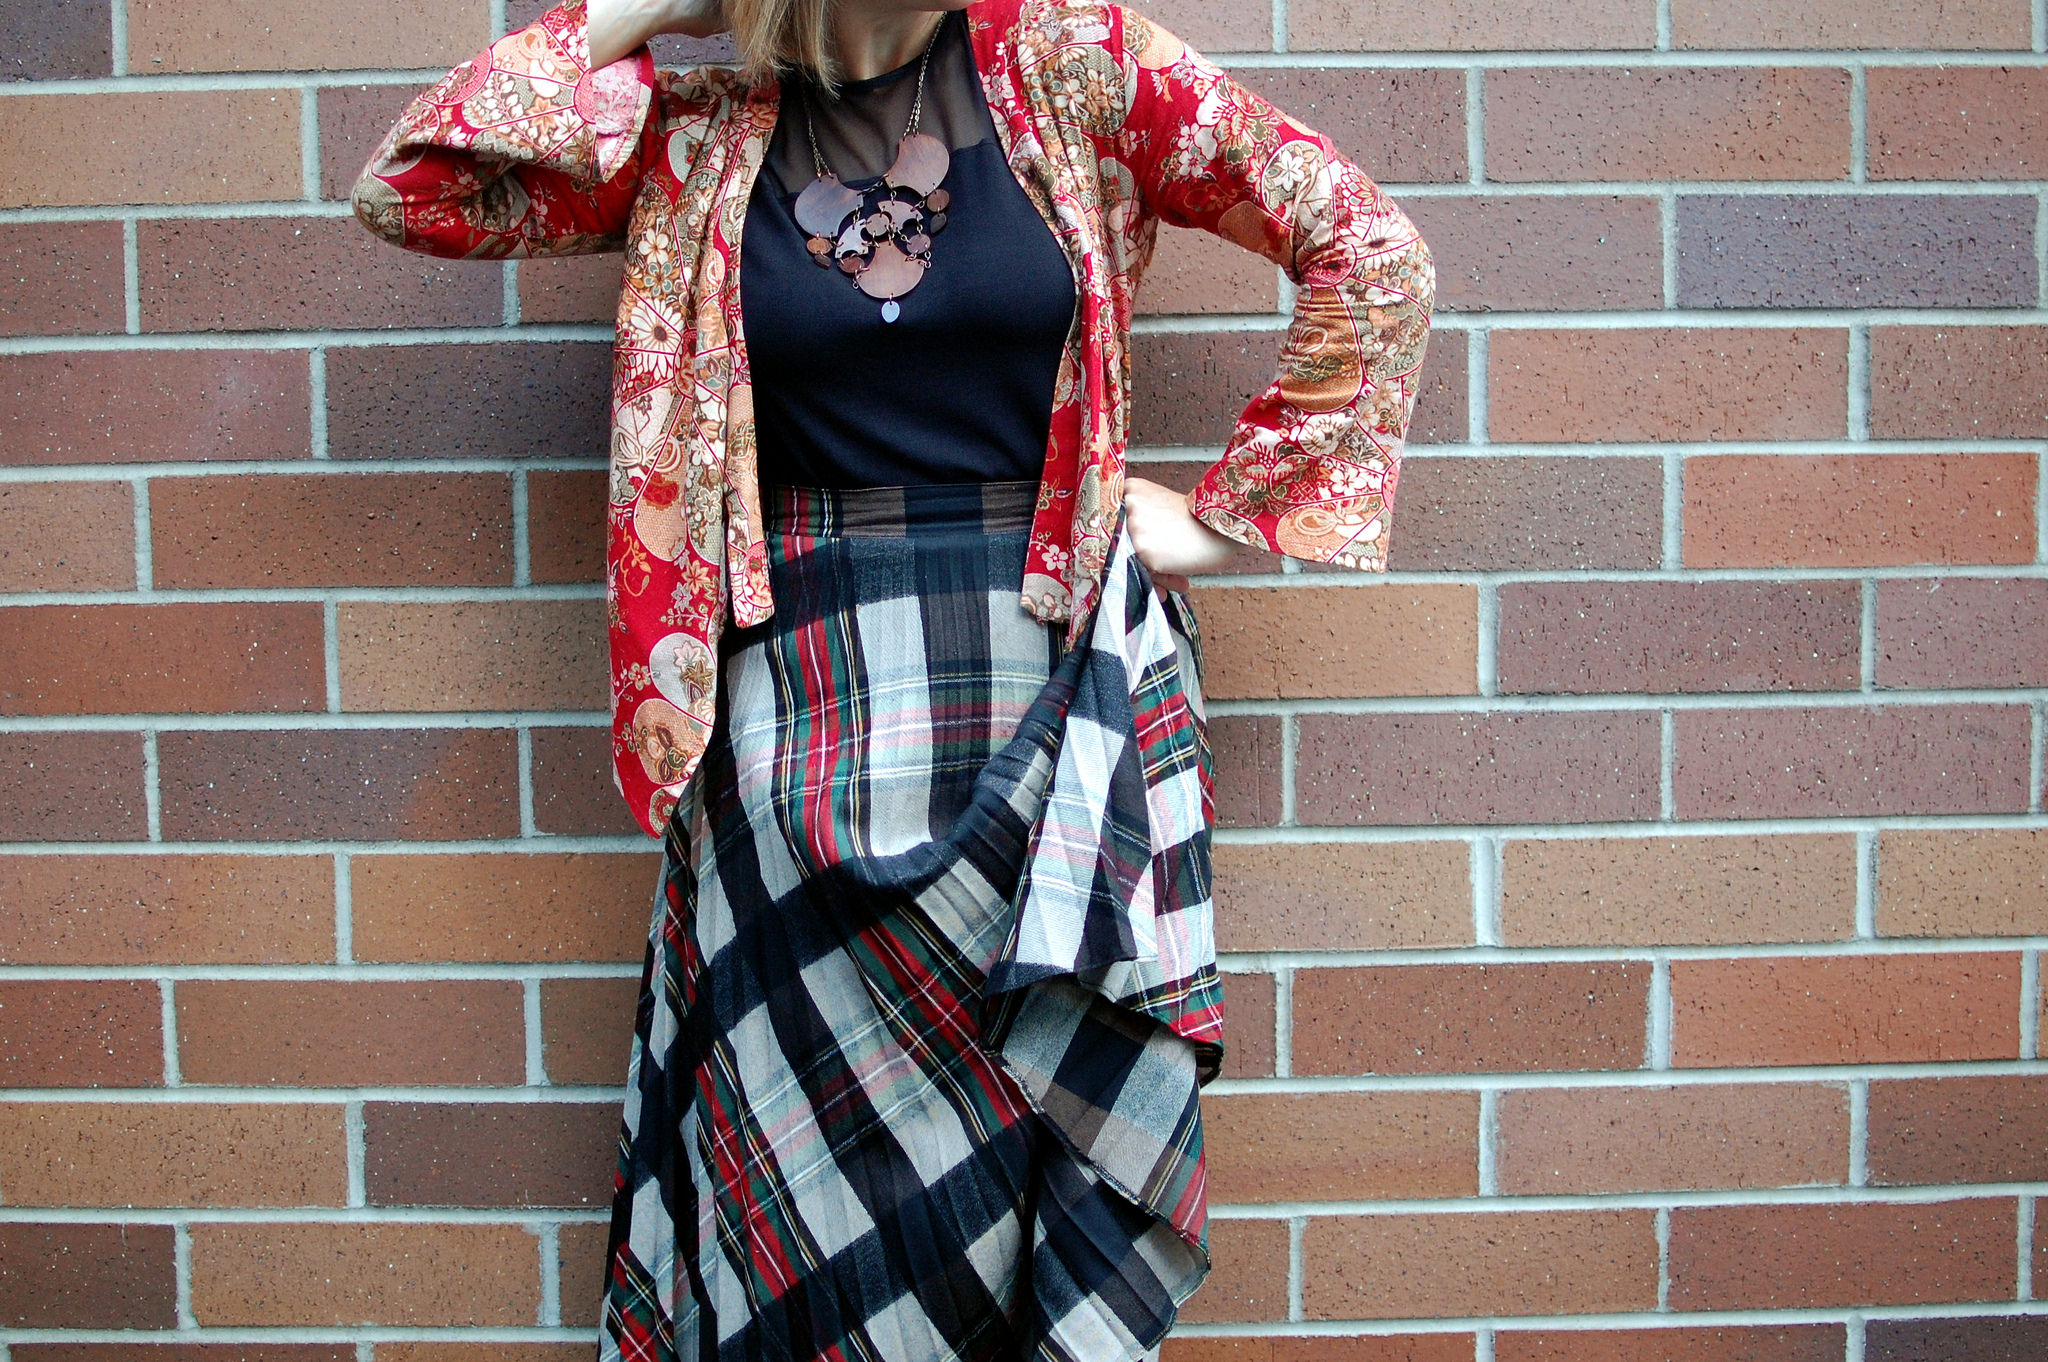 asian jacket plaid skirt pattern mix daily outfit blog ootd whatiwore2day